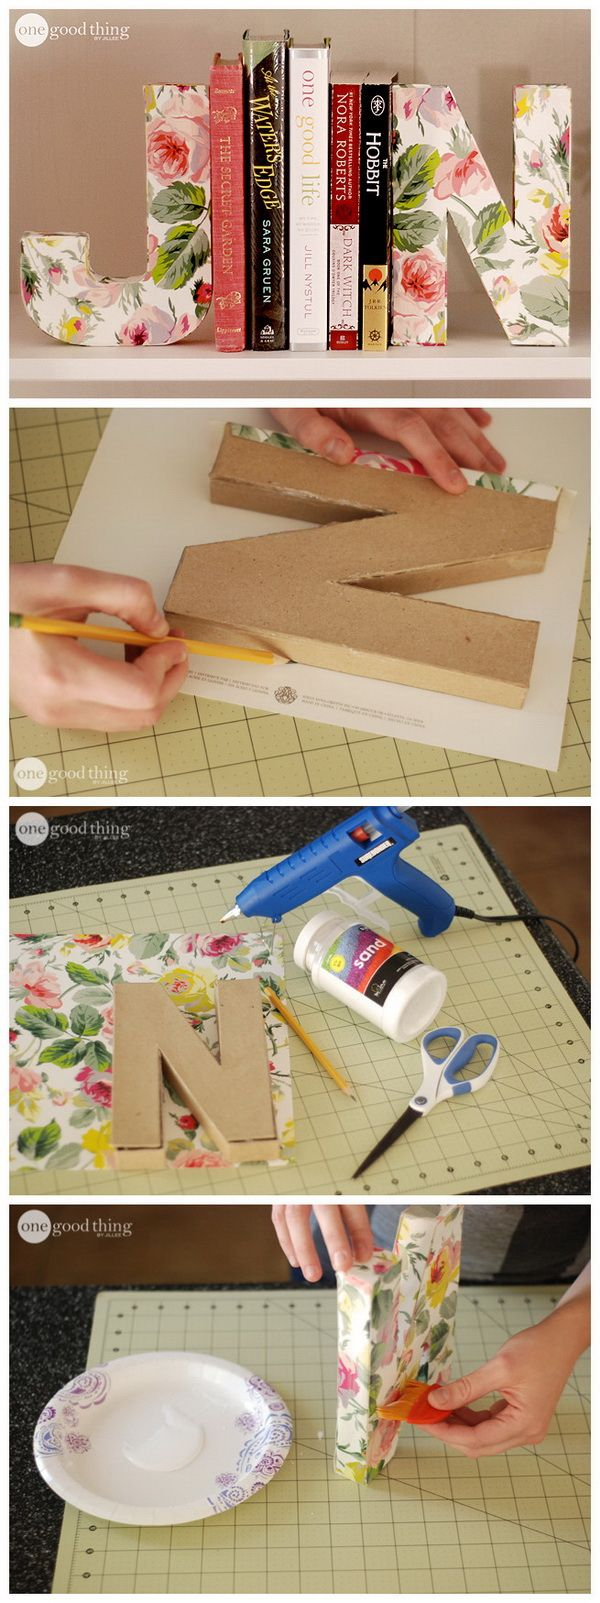 Best 25 paper letters ideas on pinterest for How to cover cardboard letters with fabric